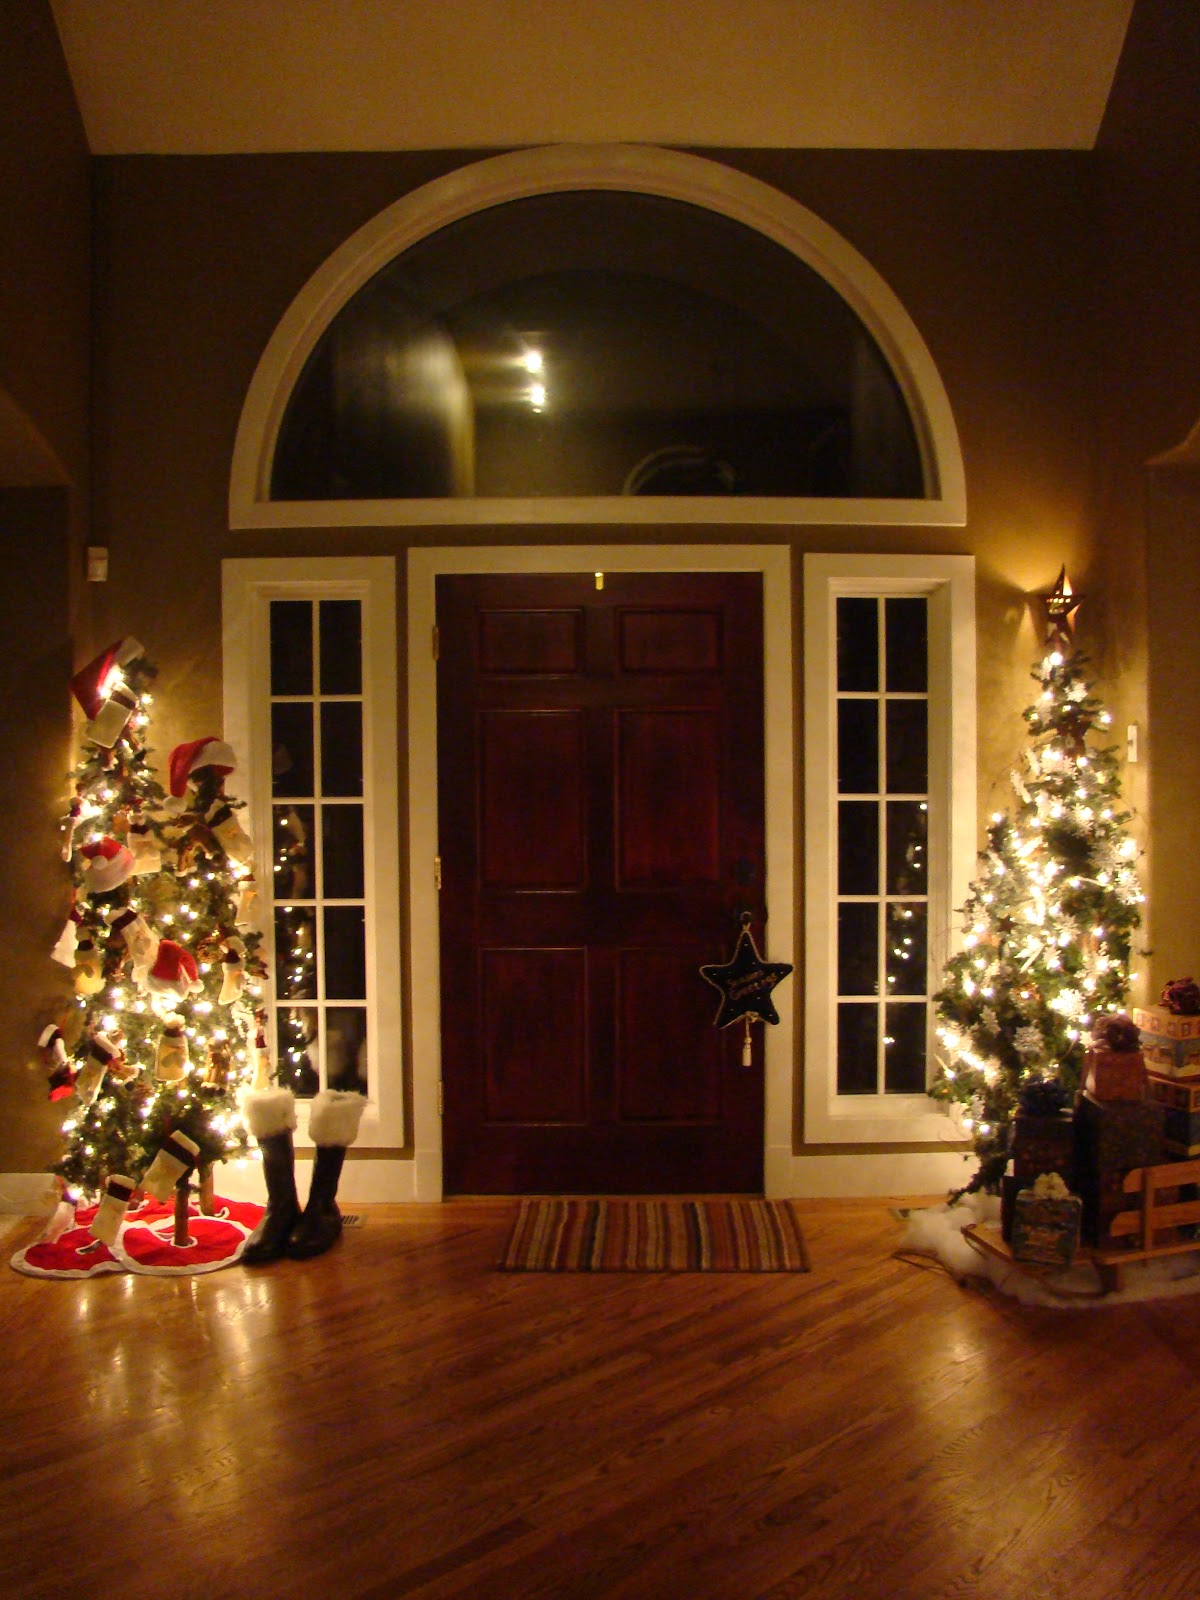 santa tree on the left snowman tree of the right - Entryway Christmas Decorations